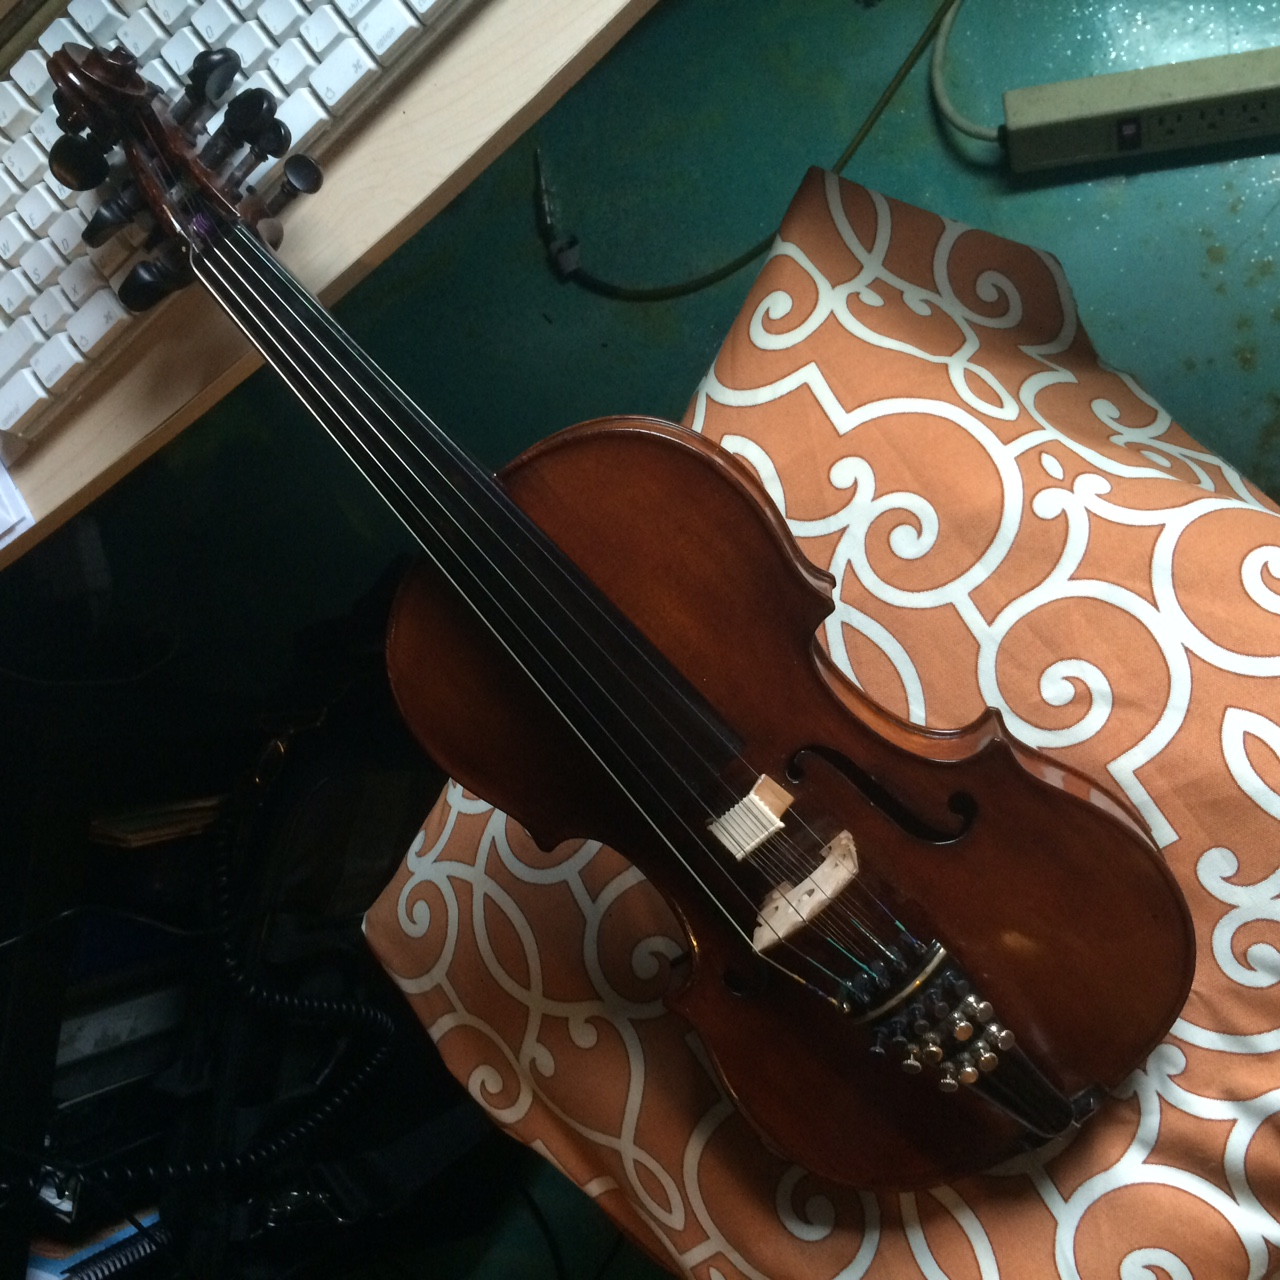 Five String Violin with Eight Resonating Strings.